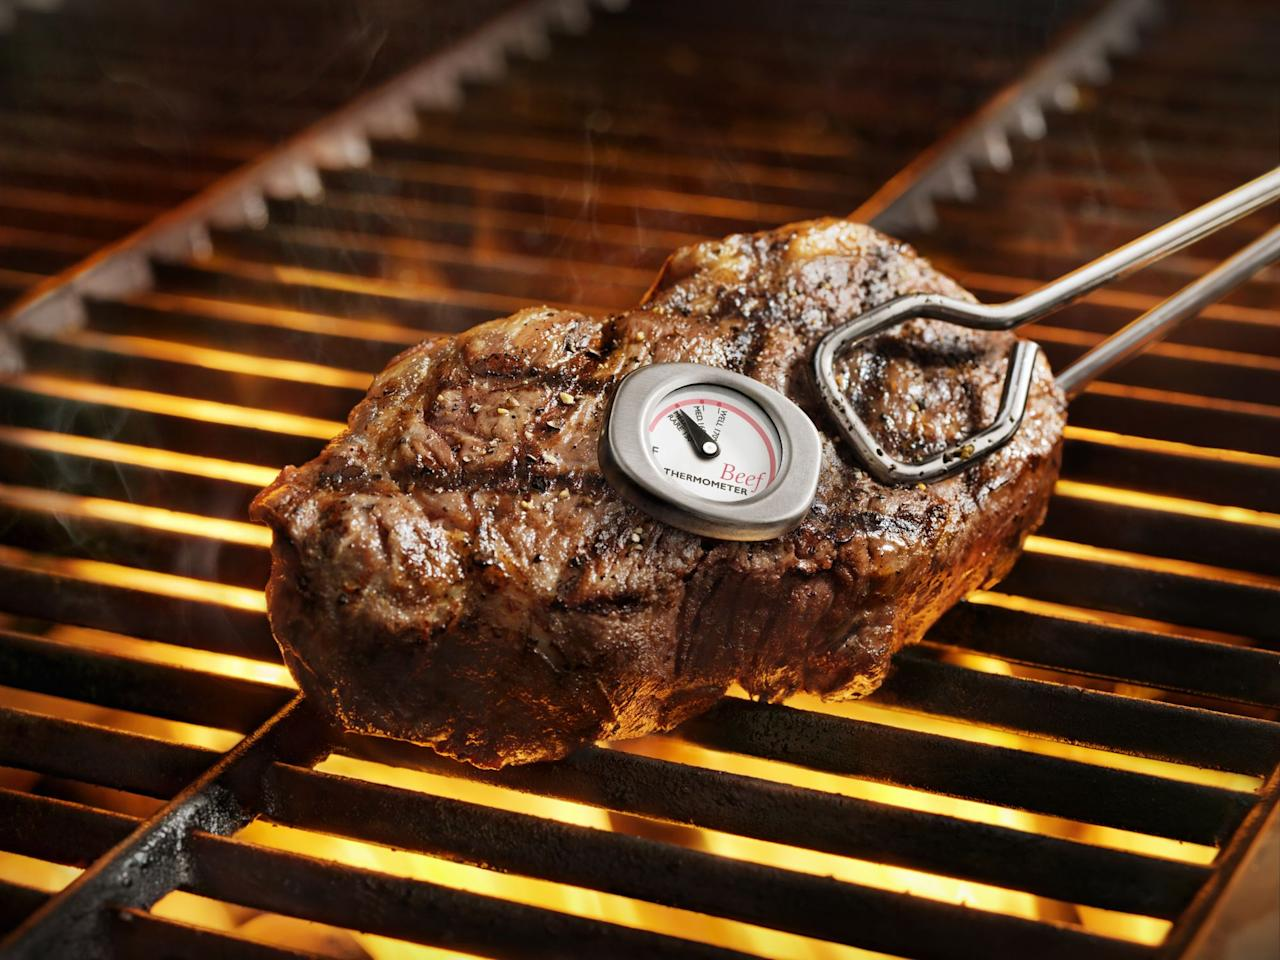 """<p>Believe it or not, people are preparing to take their <a href=""""https://www.housebeautiful.com/entertaining/holidays-celebrations/g1828/fourth-of-july-decorations/"""" target=""""_blank"""">July 4</a> grilling skills to the next level, no matter how many beers they're sipping on the holiday. Currently, <a href=""""https://www.housebeautiful.com/shopping/best-stores/a28198292/amazon-prime-day-2019/"""" target=""""_blank"""">Amazon's</a> best sellers in <a href=""""https://www.housebeautiful.com/shopping/g27821924/best-grills/"""" target=""""_blank"""">grilling</a> and bbq utensils are...meat thermometers. Though this might seem like an odd item, they're a smart investment; after all, no one wants an overcooked burger at a cookout.  We've all been offered the driest burger on earth by that one uncle who thinks he's the king of grilling.</p><p>Hopefully that doesn't happen this year—because everyone seems to be racking up on meat thermometers! Here are the top five selling meat thermometers that'll make a great July 4 gift for the the people in your life who you love...but need a little help when it comes to using a grill:</p>"""